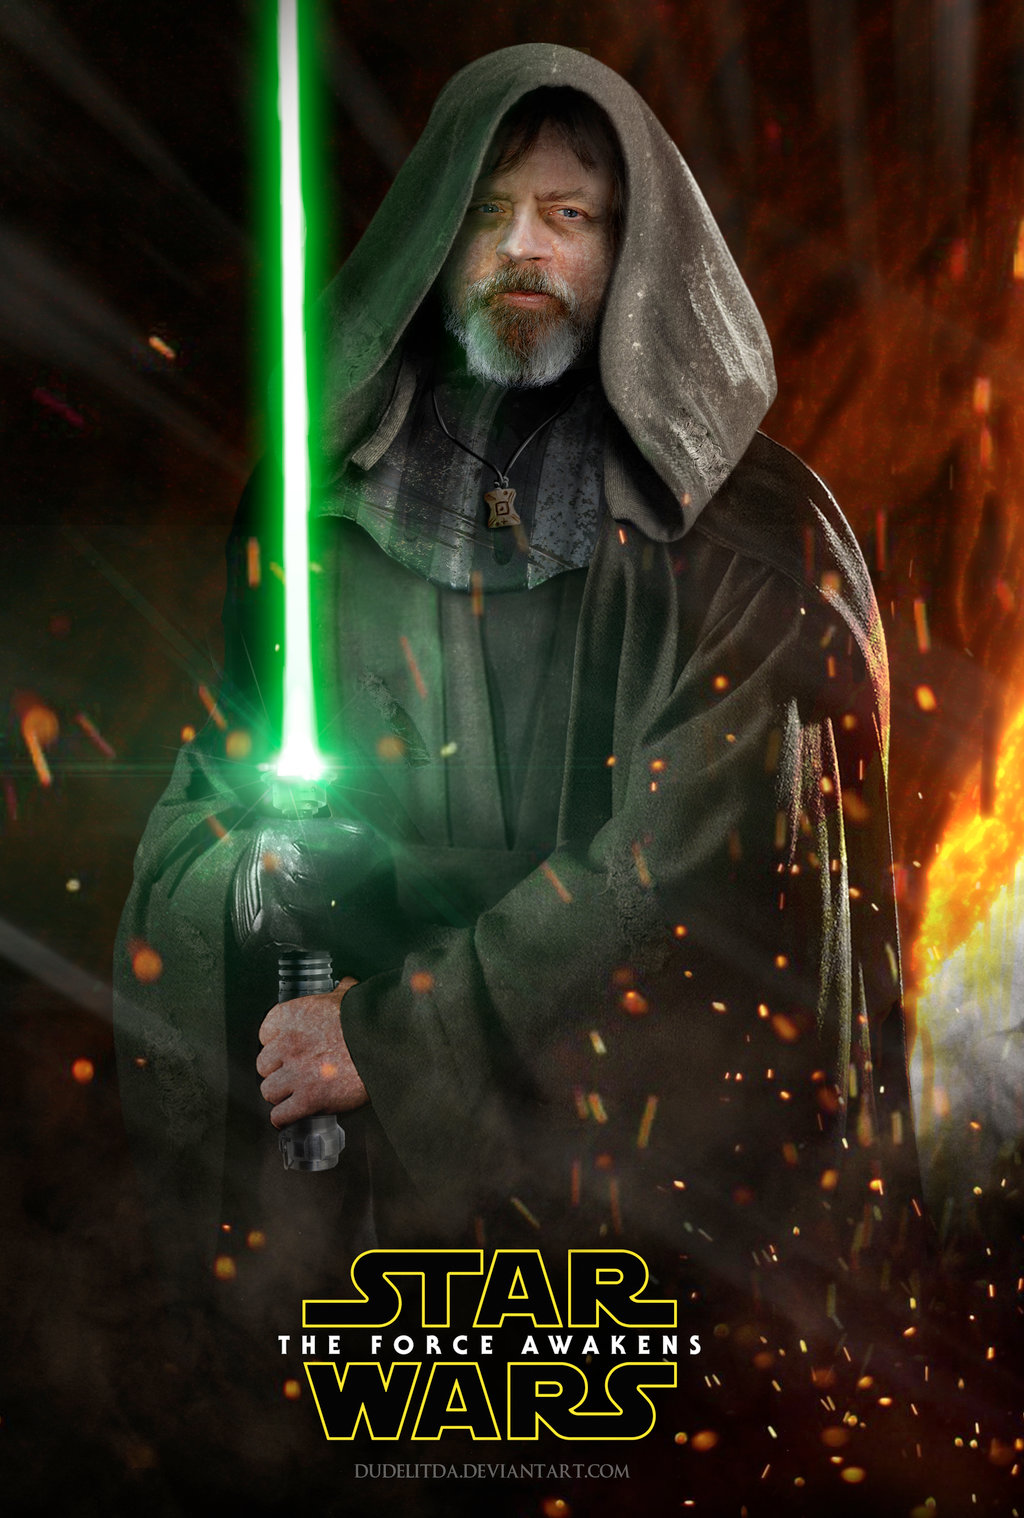 Star Wars Luke Force Awakens From dudelitdadeviantartcom 1024x1518